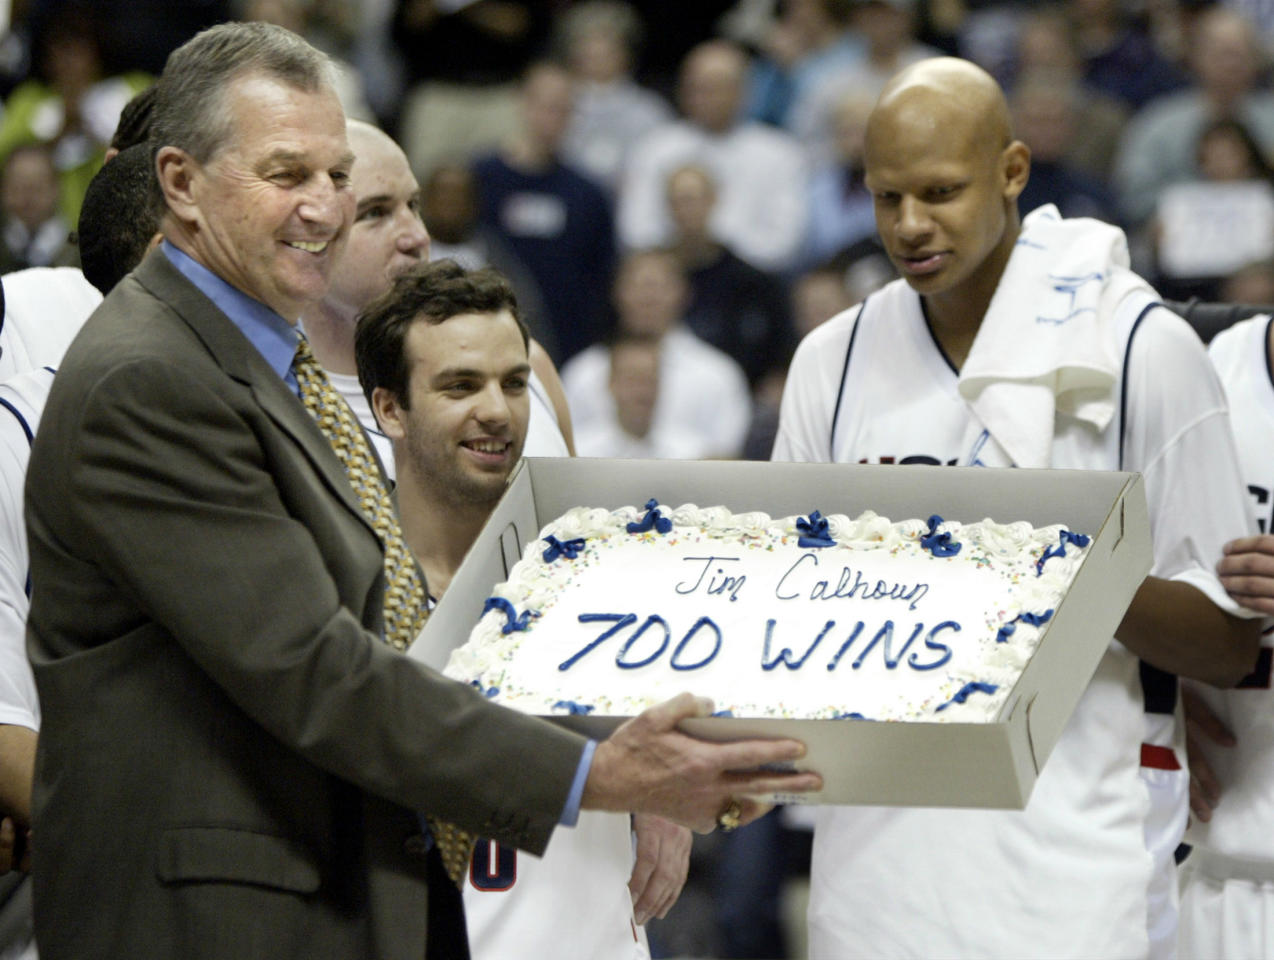 University of Connecticut basketball head coach Jim Calhoun (L) holds up a cake from his players after he achieved his 700th career win with an 83-64 win over Georgetown in Storrs, Connecticut March 2, 2005. With Calhoun are Sami Ameziane (C) and Chalie Villanueva. REUTERS/Brian Snyder  BS